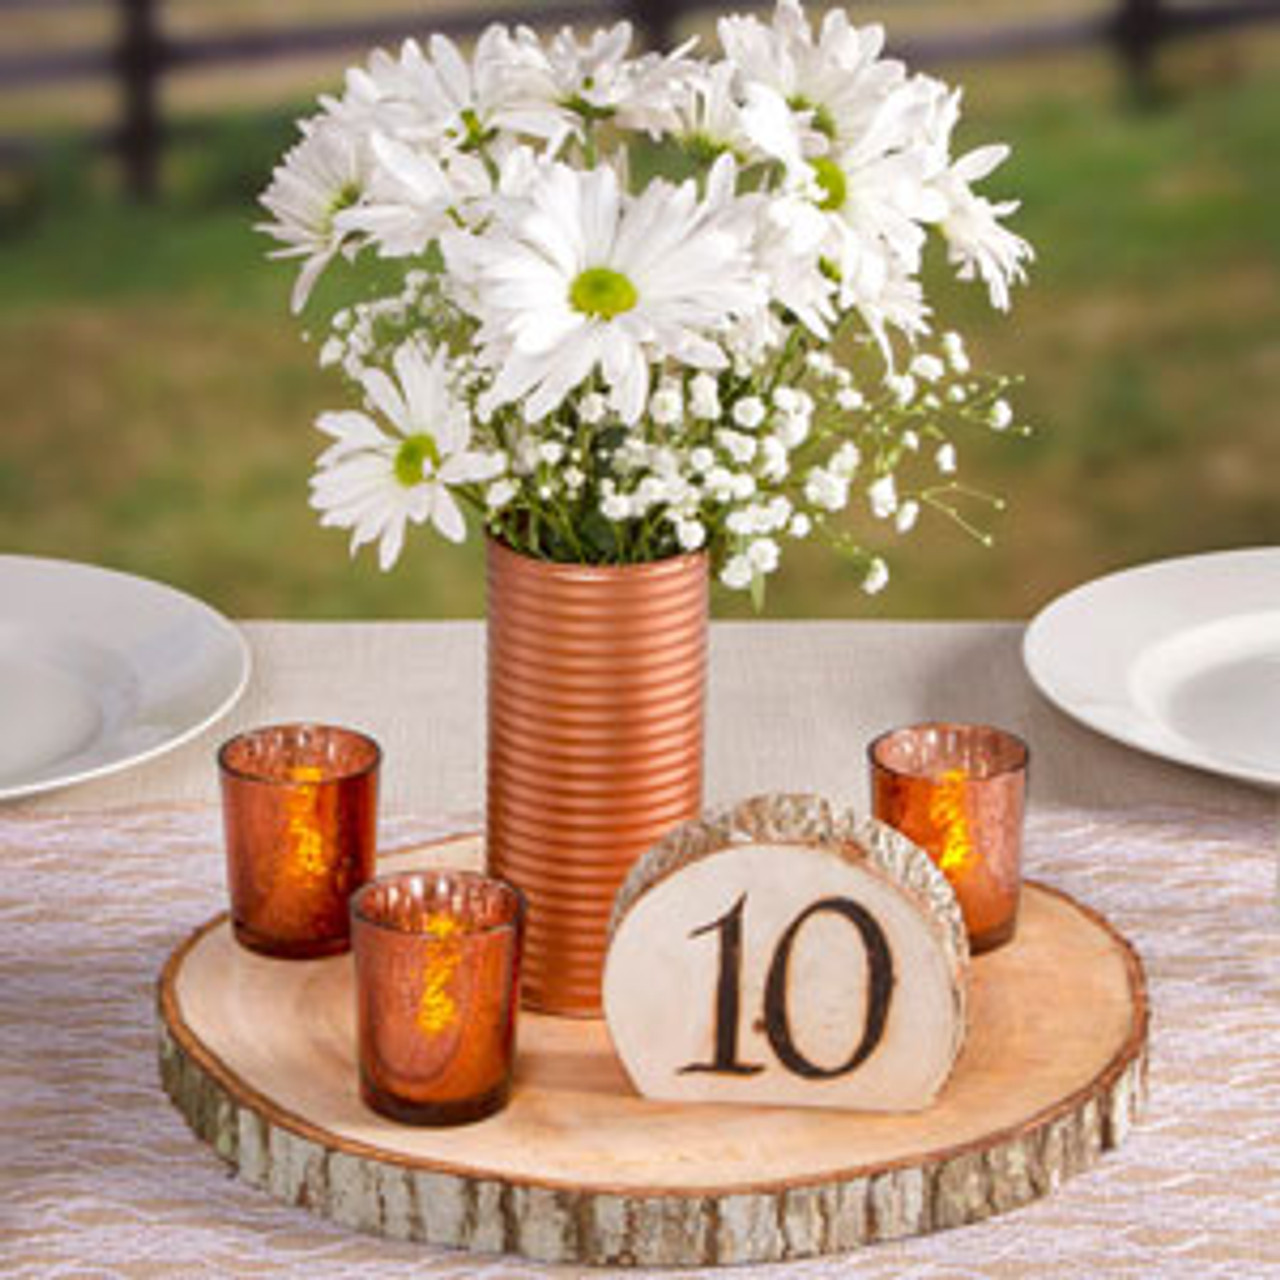 Wood Slice Chargers: Rustic Wood Slice Charger For Centerpieces